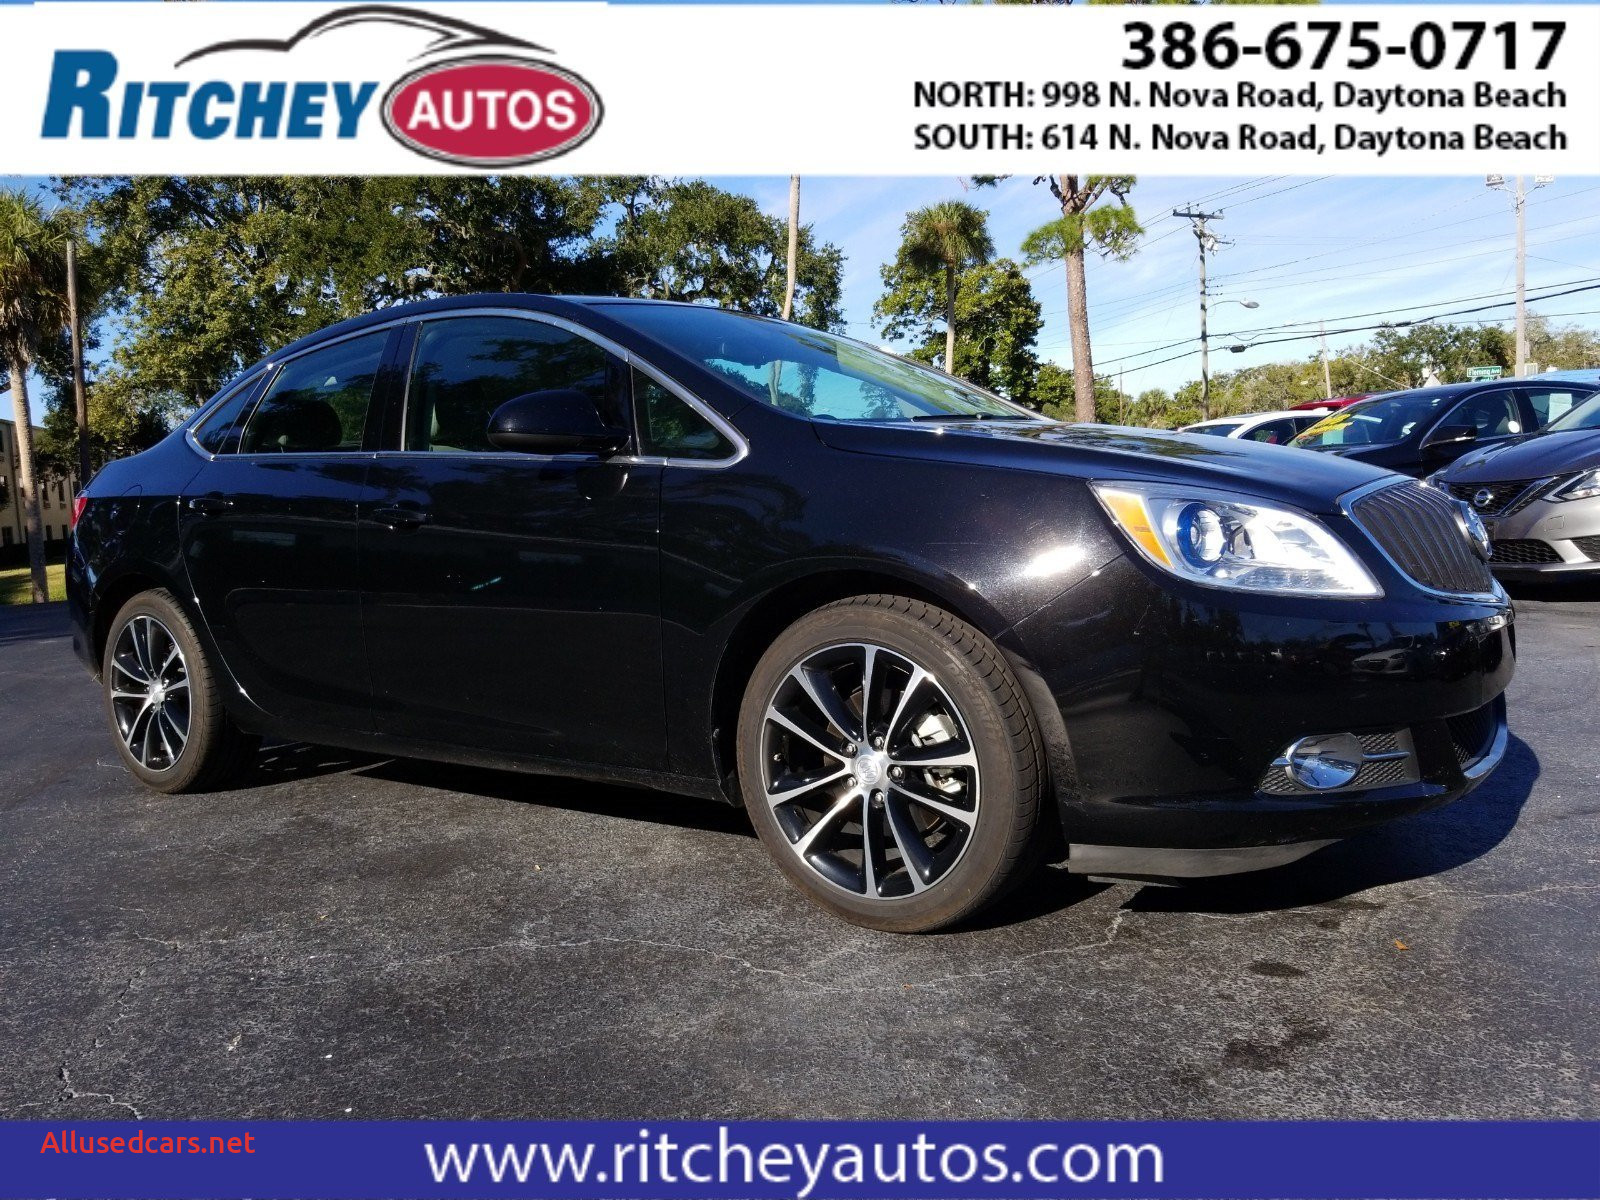 2015 Buick Verano Luxury Used Buick for Sale In Daytona Beach Fl Ritchey Autos